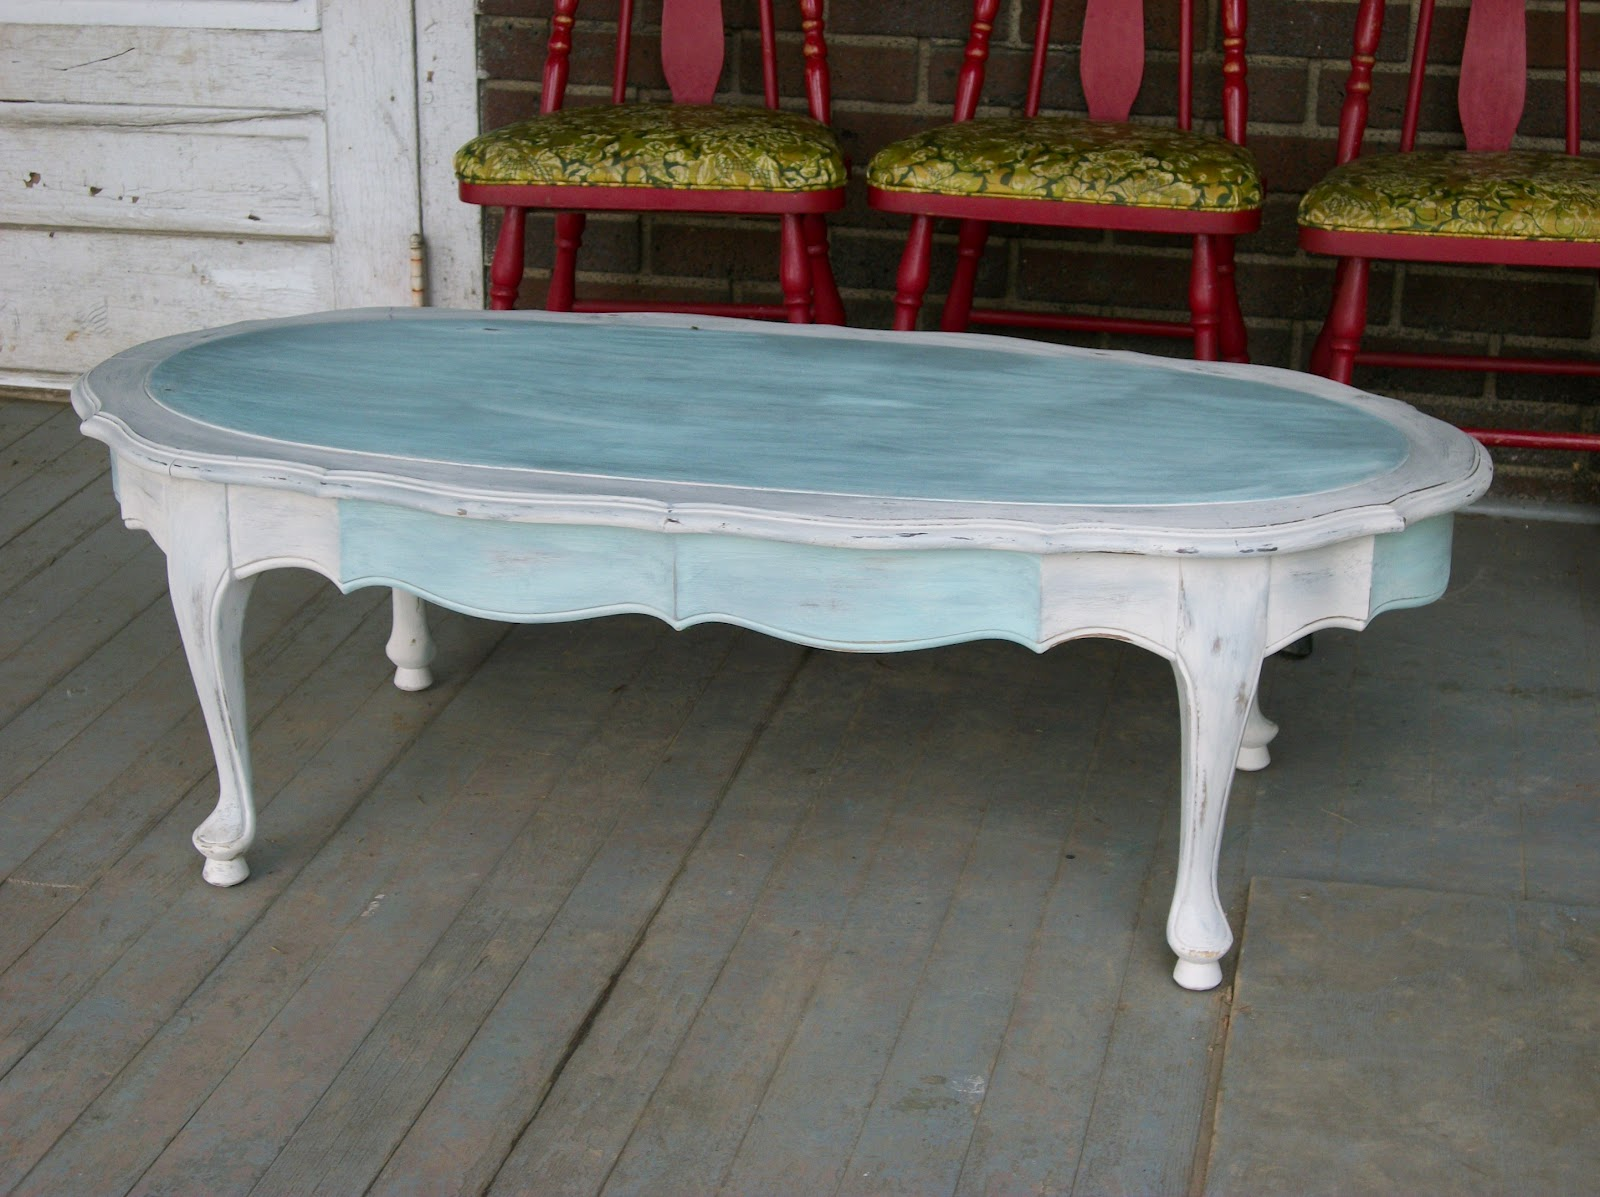 Stairstep boys: My Latest Project - Shabby Chic Coffee Table